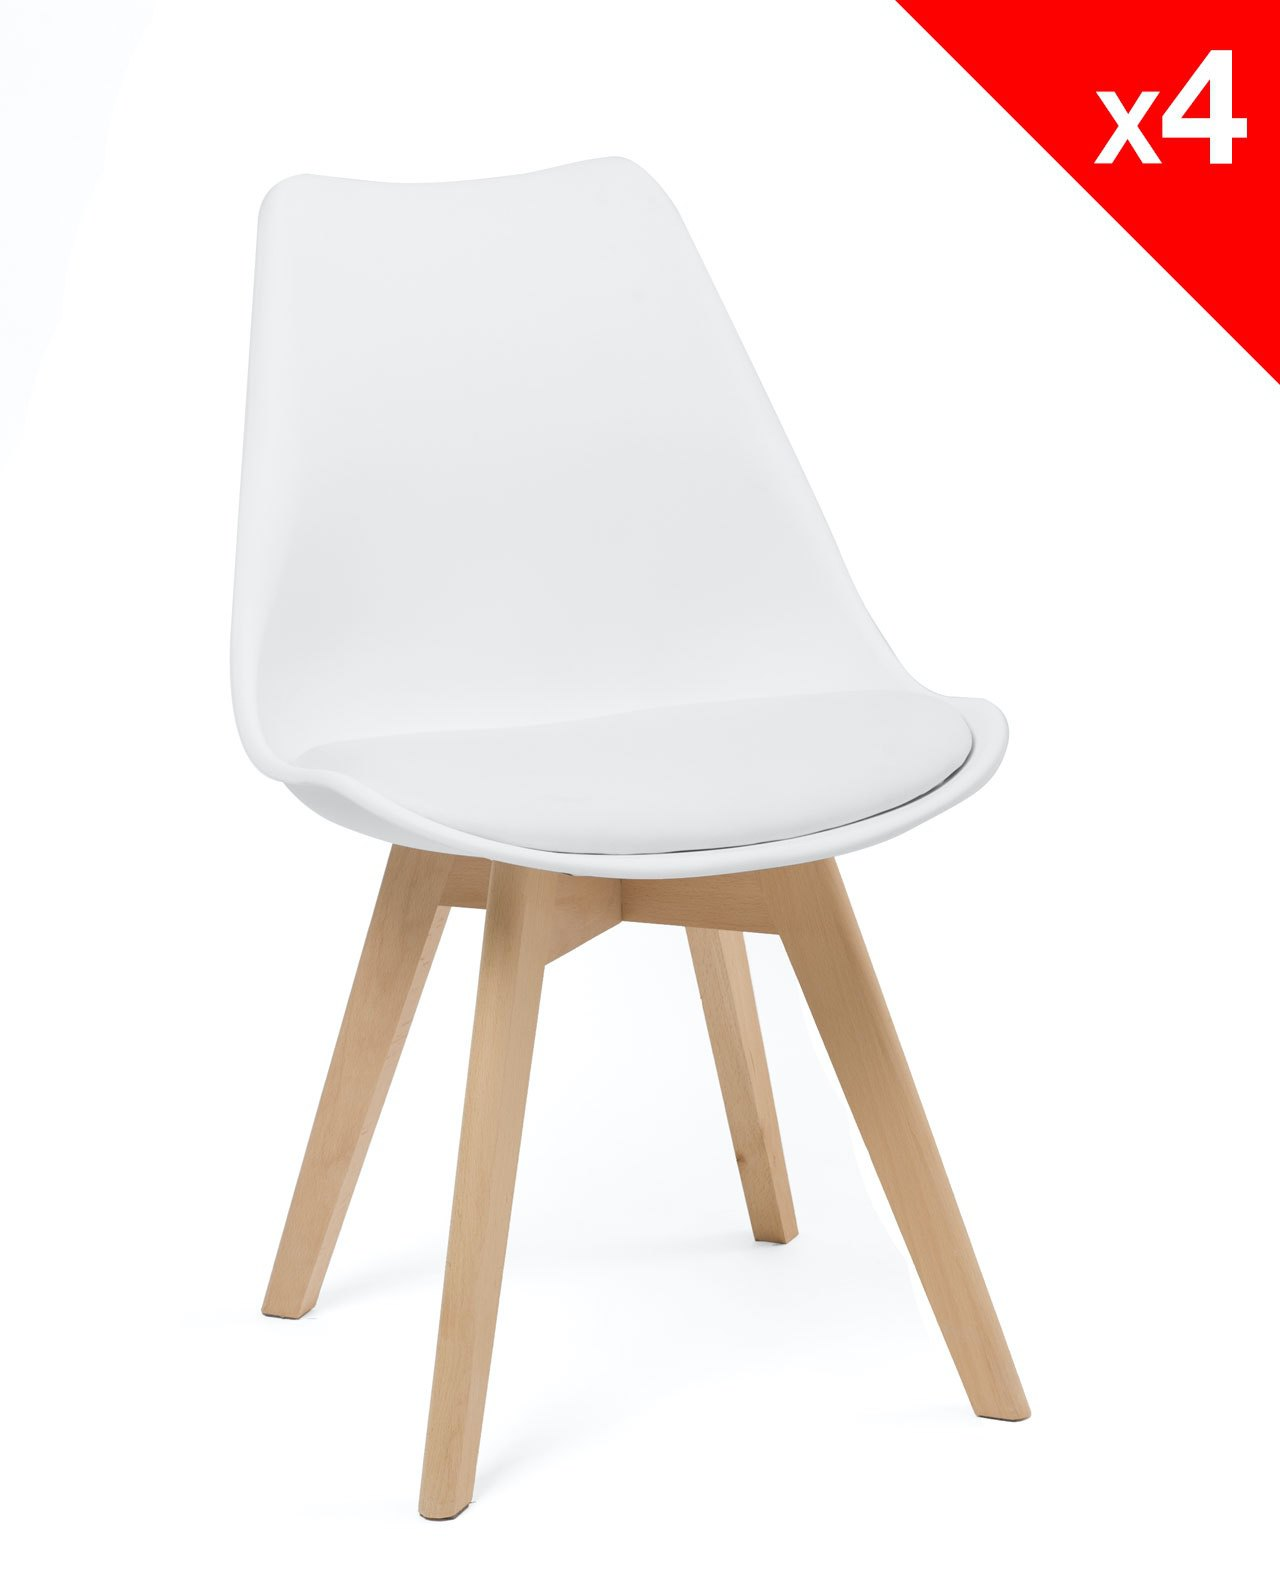 Chaise Scandinave Rembourree Lao Lot De 4 Chaises Scandinave Rembourrées